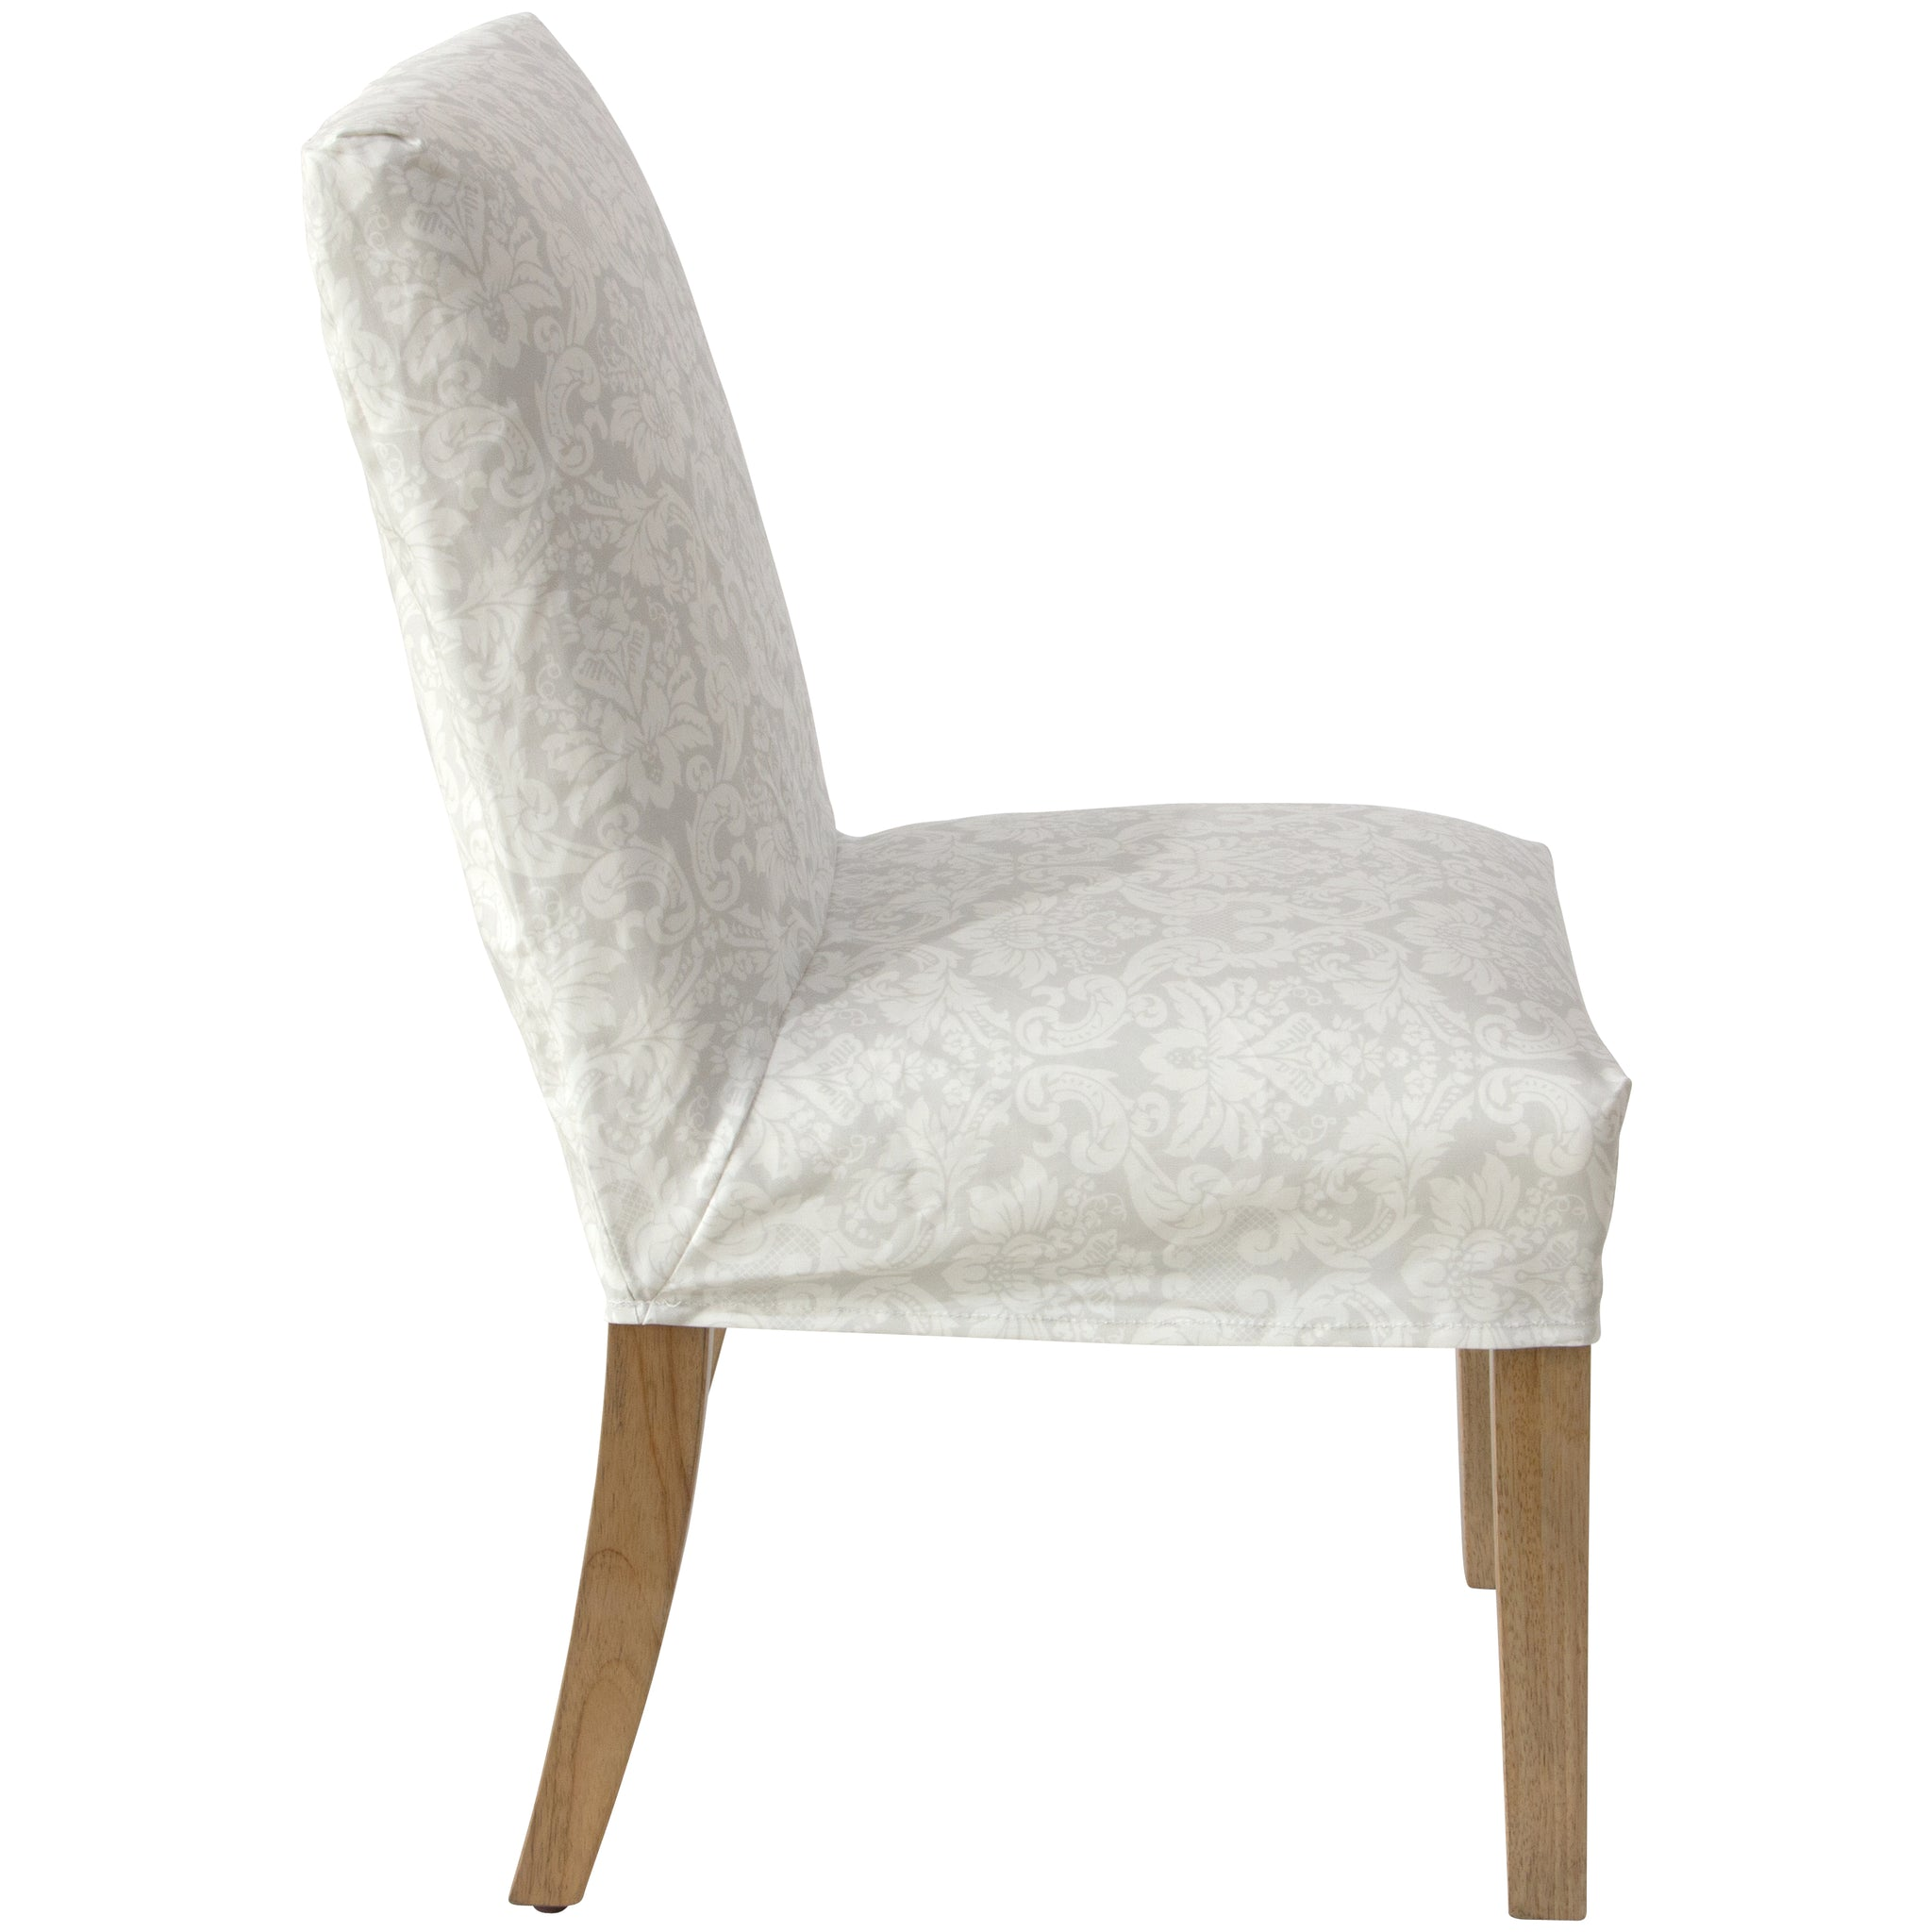 Shabby Chic Furniture Swallow Slipcover Dining Chair